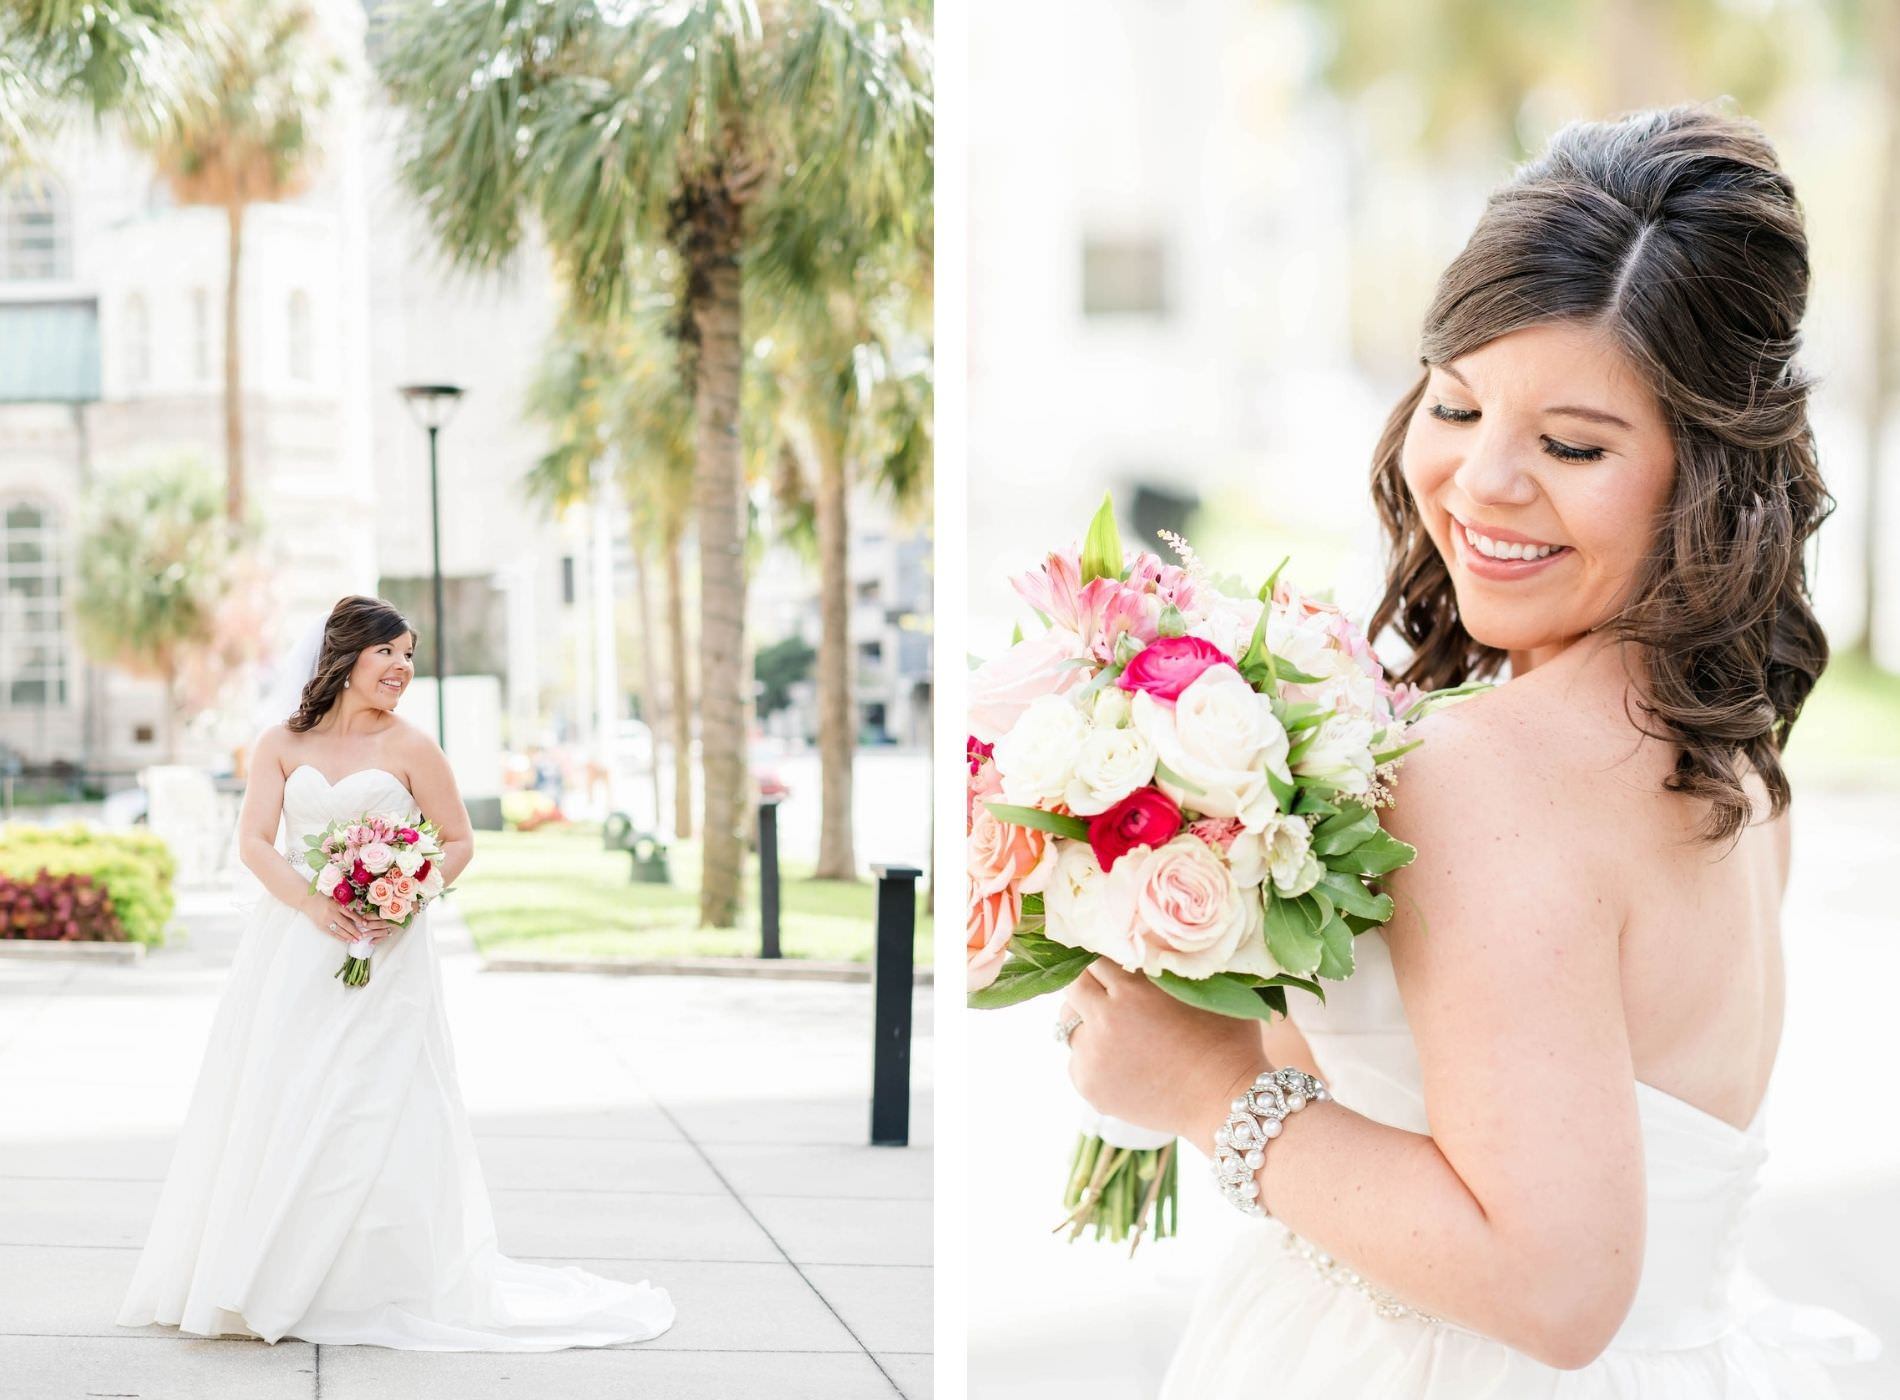 Classic Makeup and Half Updo Bride in Strapless A-Line Wedding Dress Holding White, Pink and Red Roses Floral Bouquet | Tampa Bay Wedding Hair and Makeup Adore Bridal